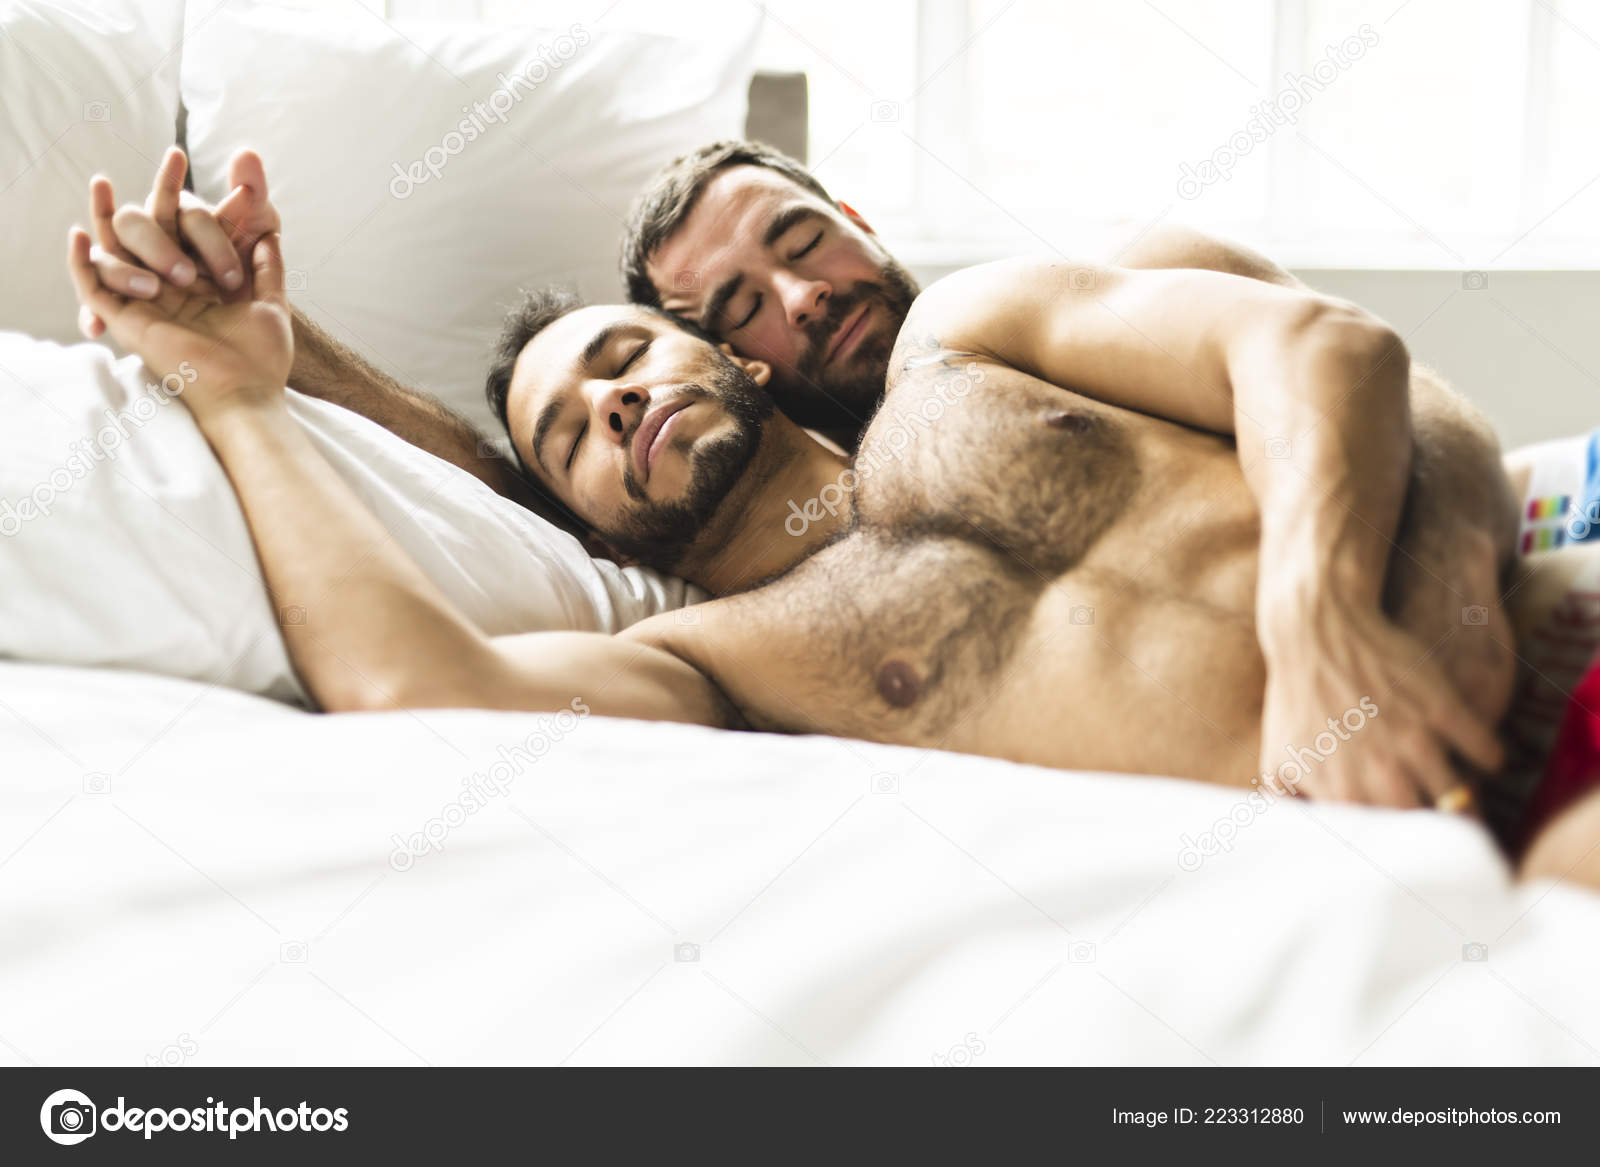 Gay men together bed